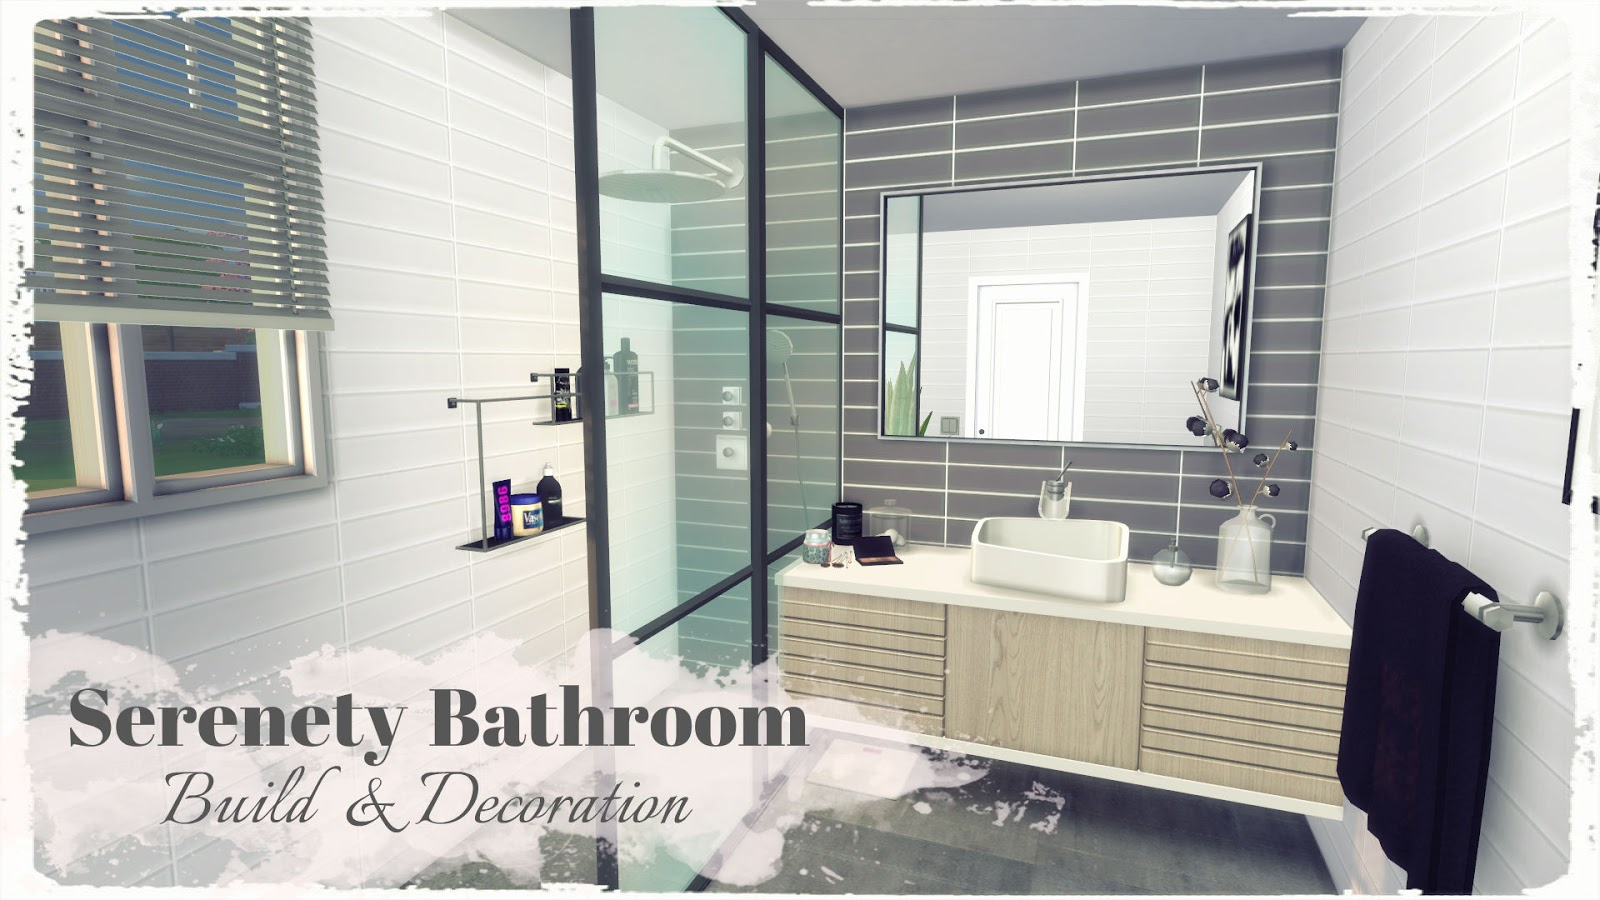 Arguably the most anticipated title released by electronic arts this year, the. Sims 4 - Serenety Bathroom (Build & Decoration) - Dinha